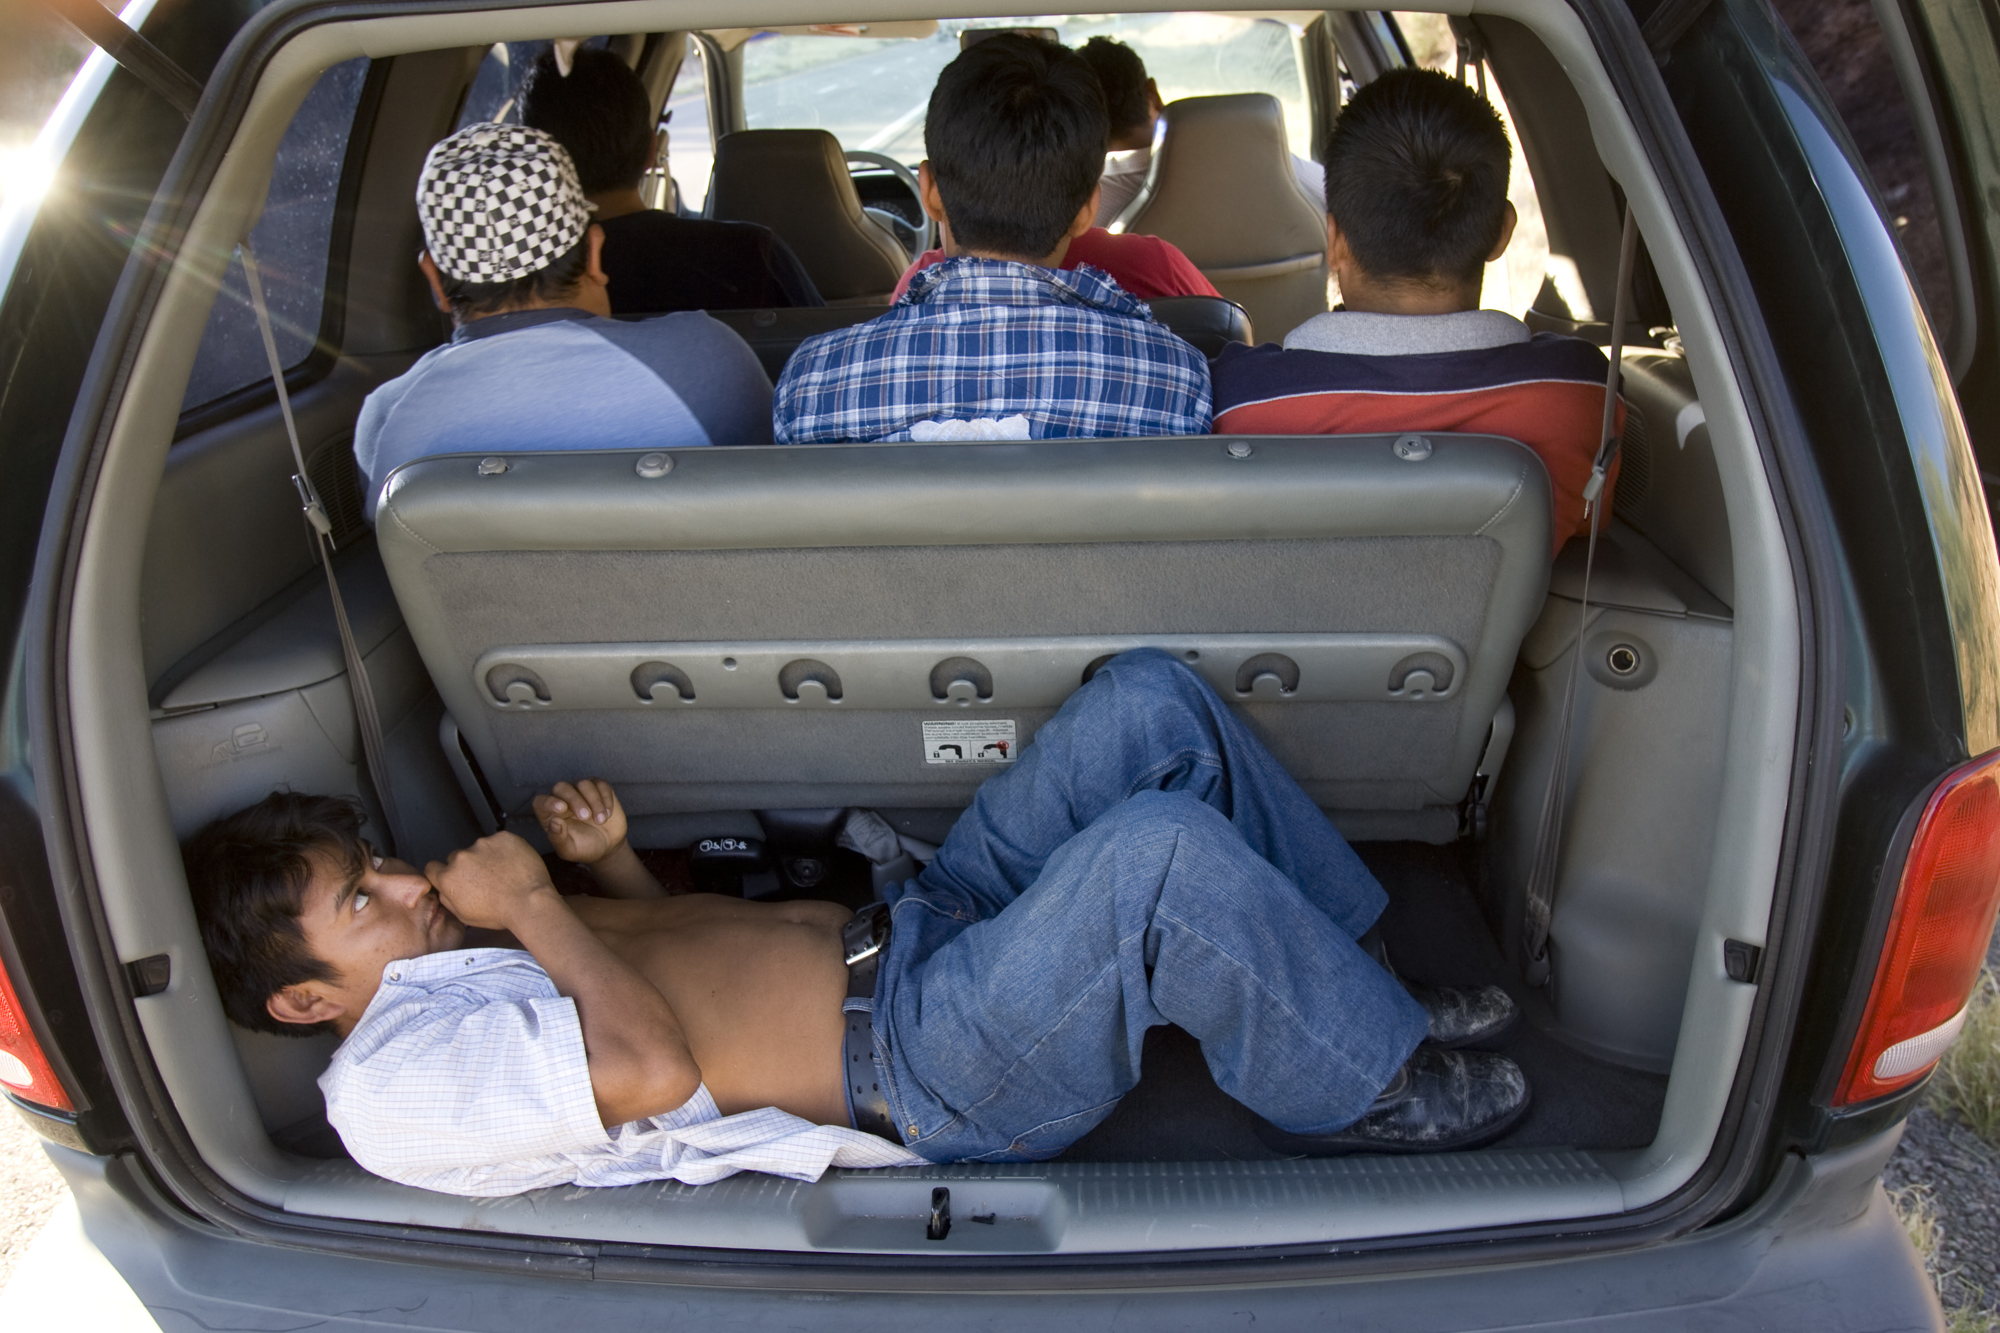 6/3/08- An illigal immigrant lays in the back of a minivan loaded with nine people that was stopped along  I-17.  The group was taken into custody by Maricopa County Sheriff's deputies. (Pat Shannahan/ The Arizona Republic)